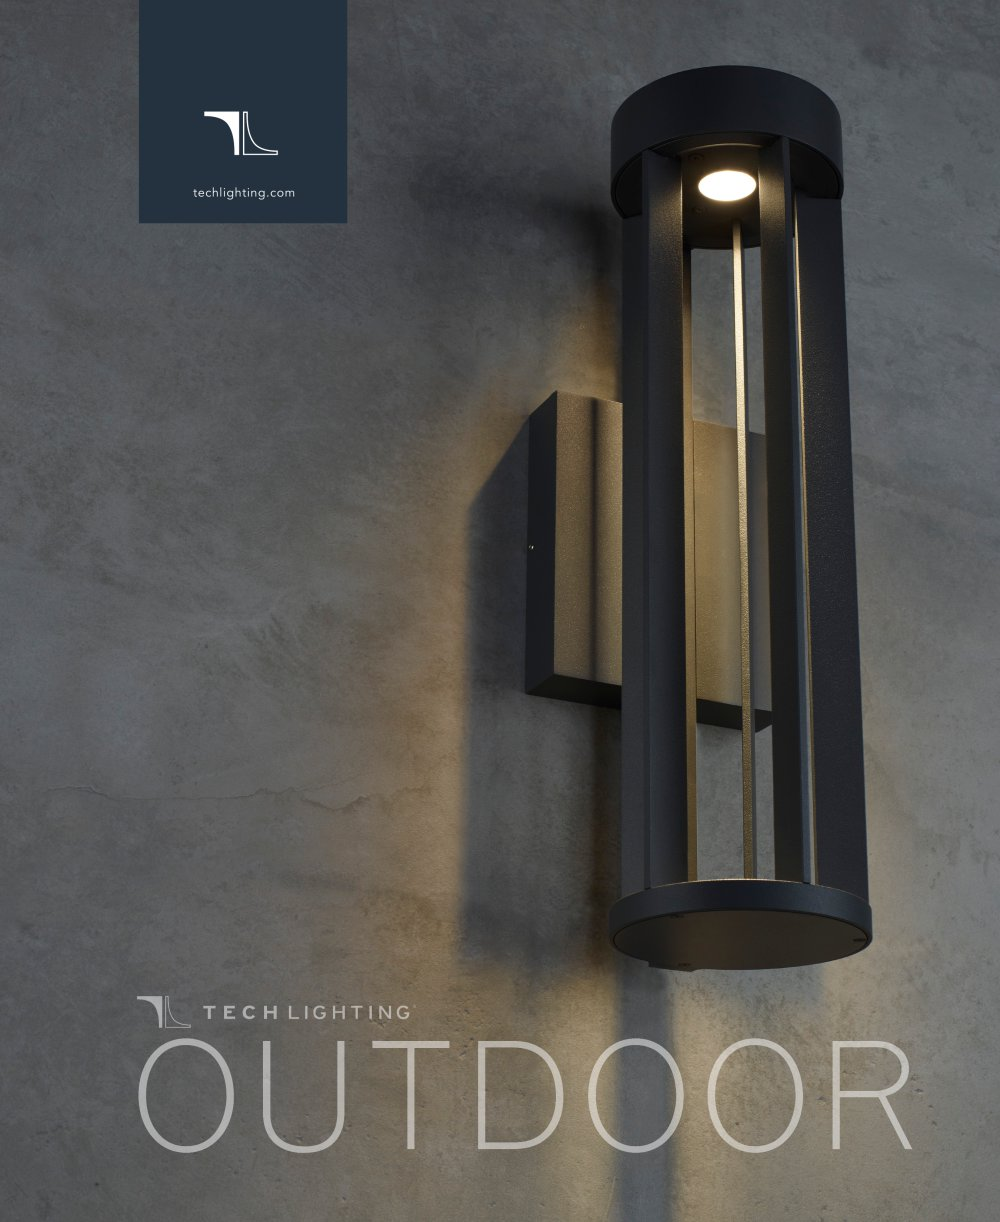 2017 Tech Lighting Outdoor Catalog 100 Pages